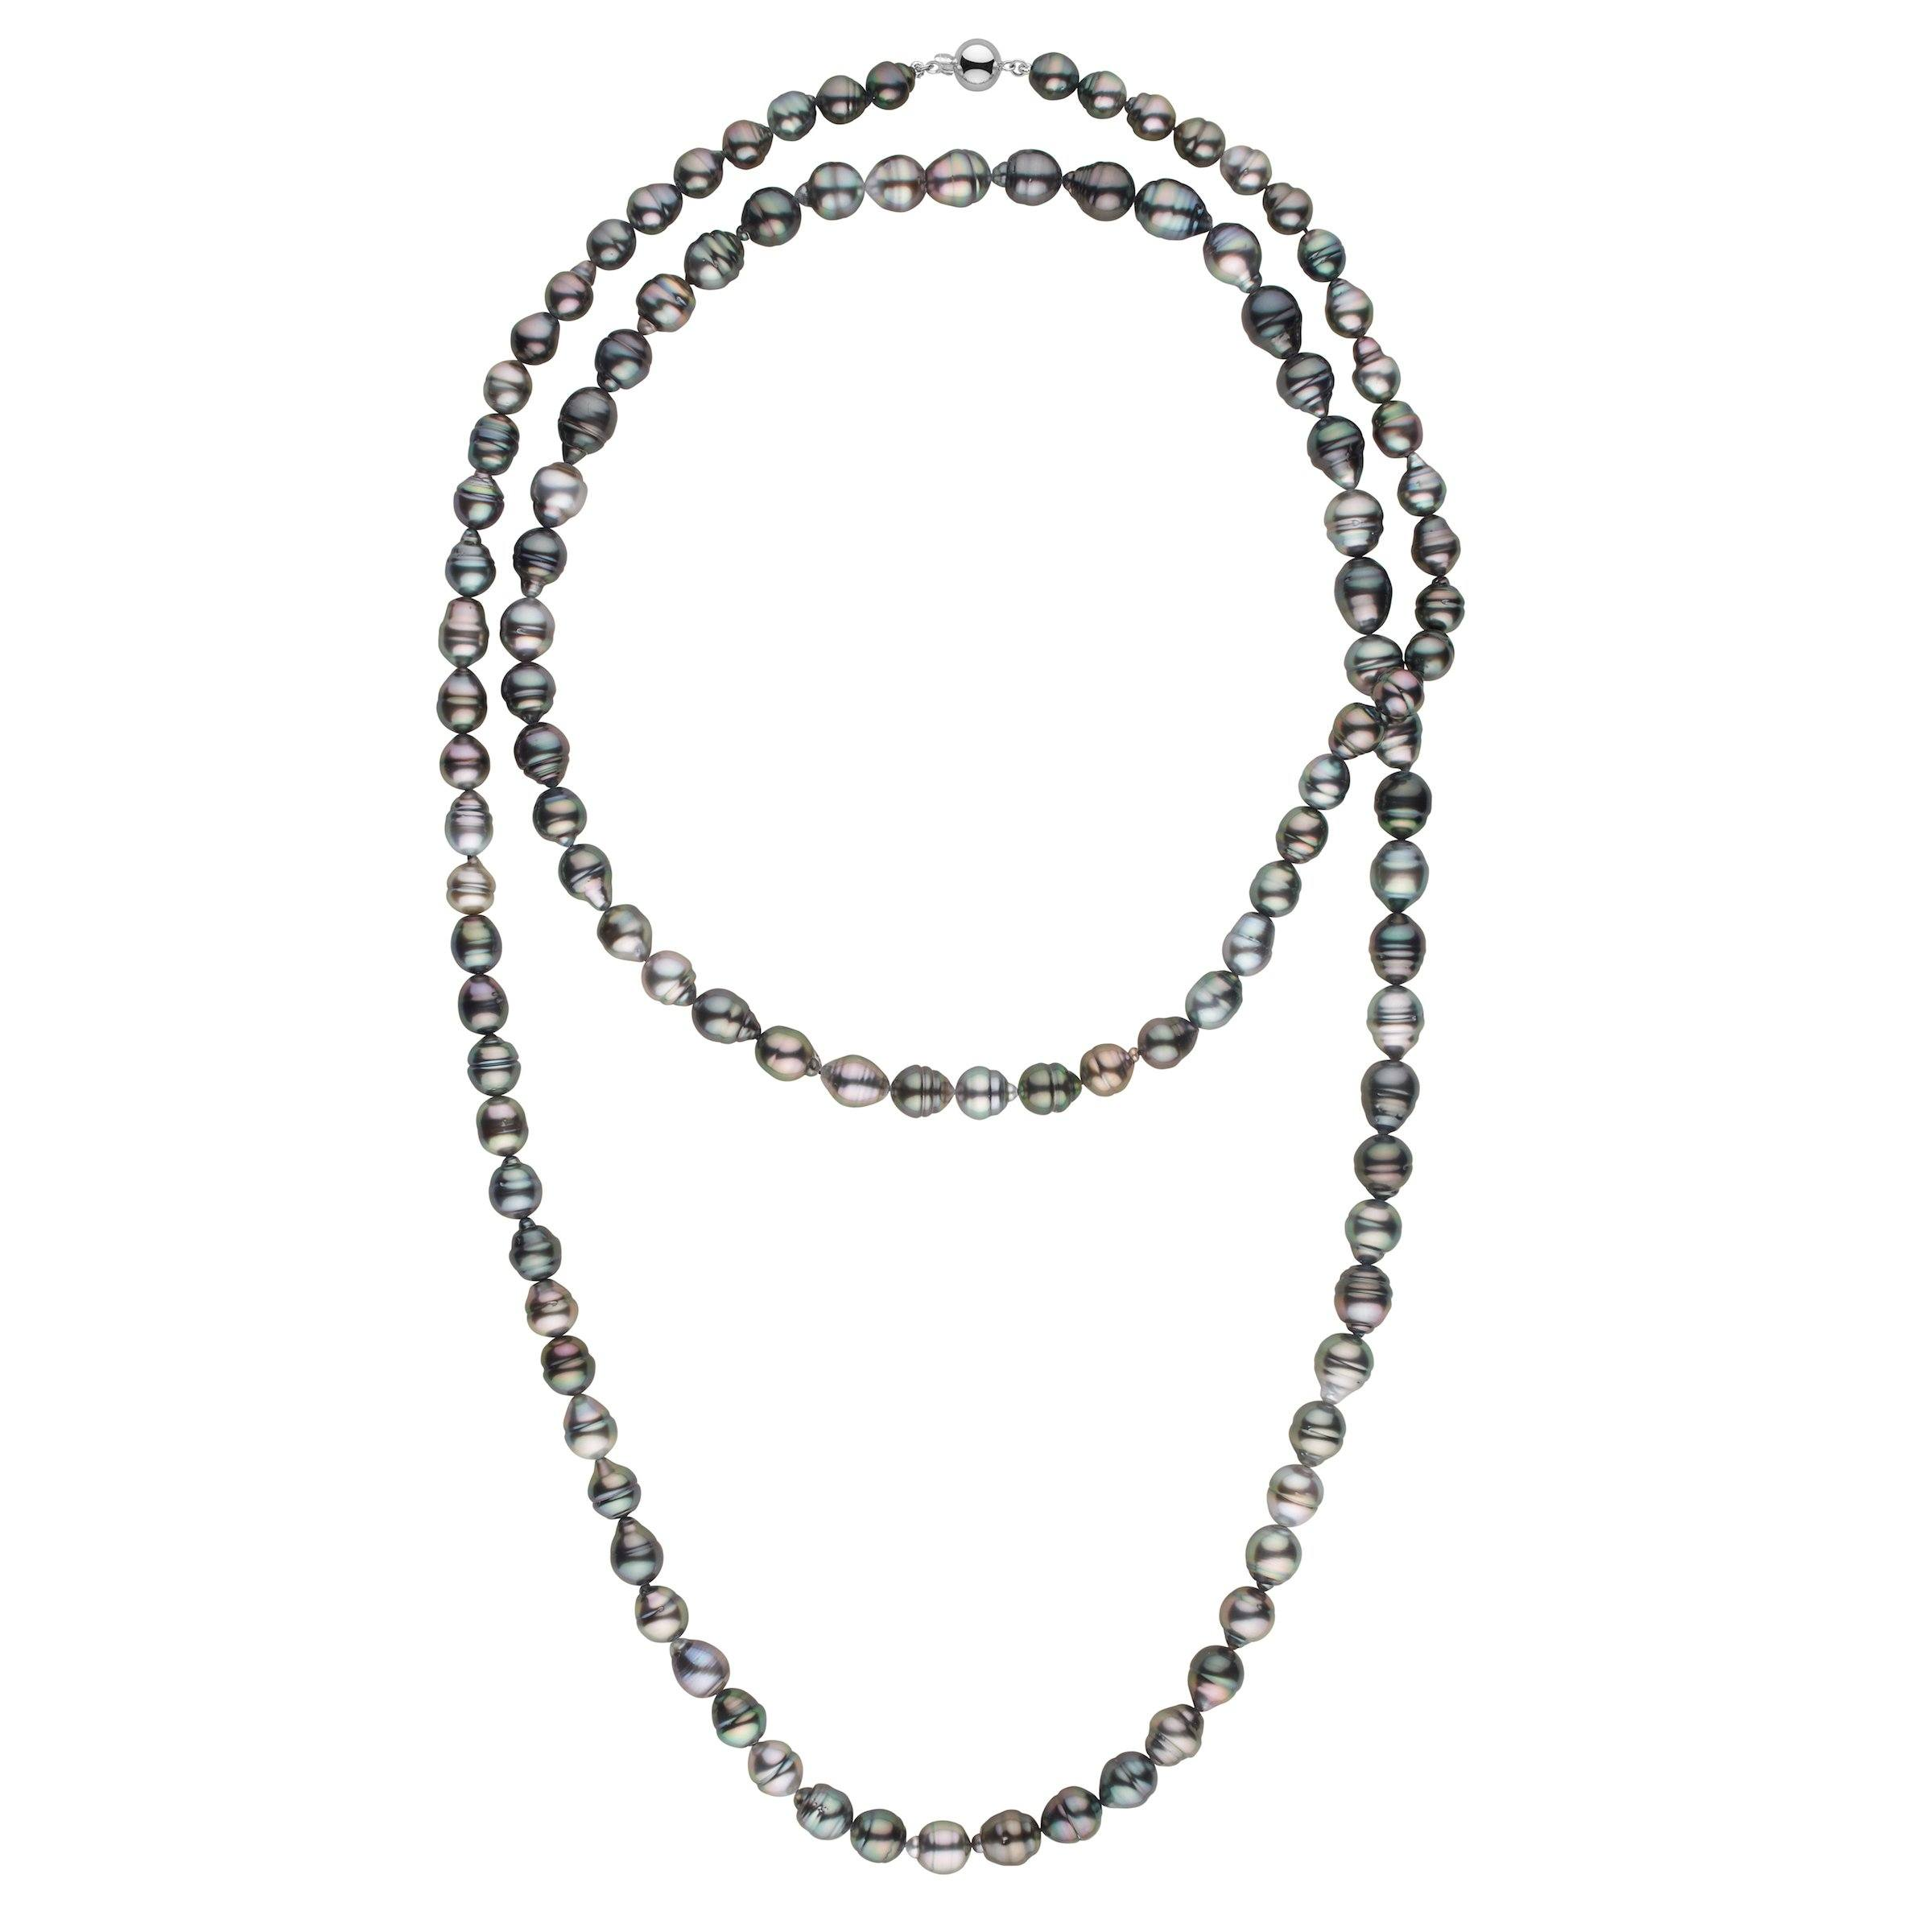 8.2-10.5 mm AA+/AAA Tahitian Baroque Pearl Necklace - 54 Inches